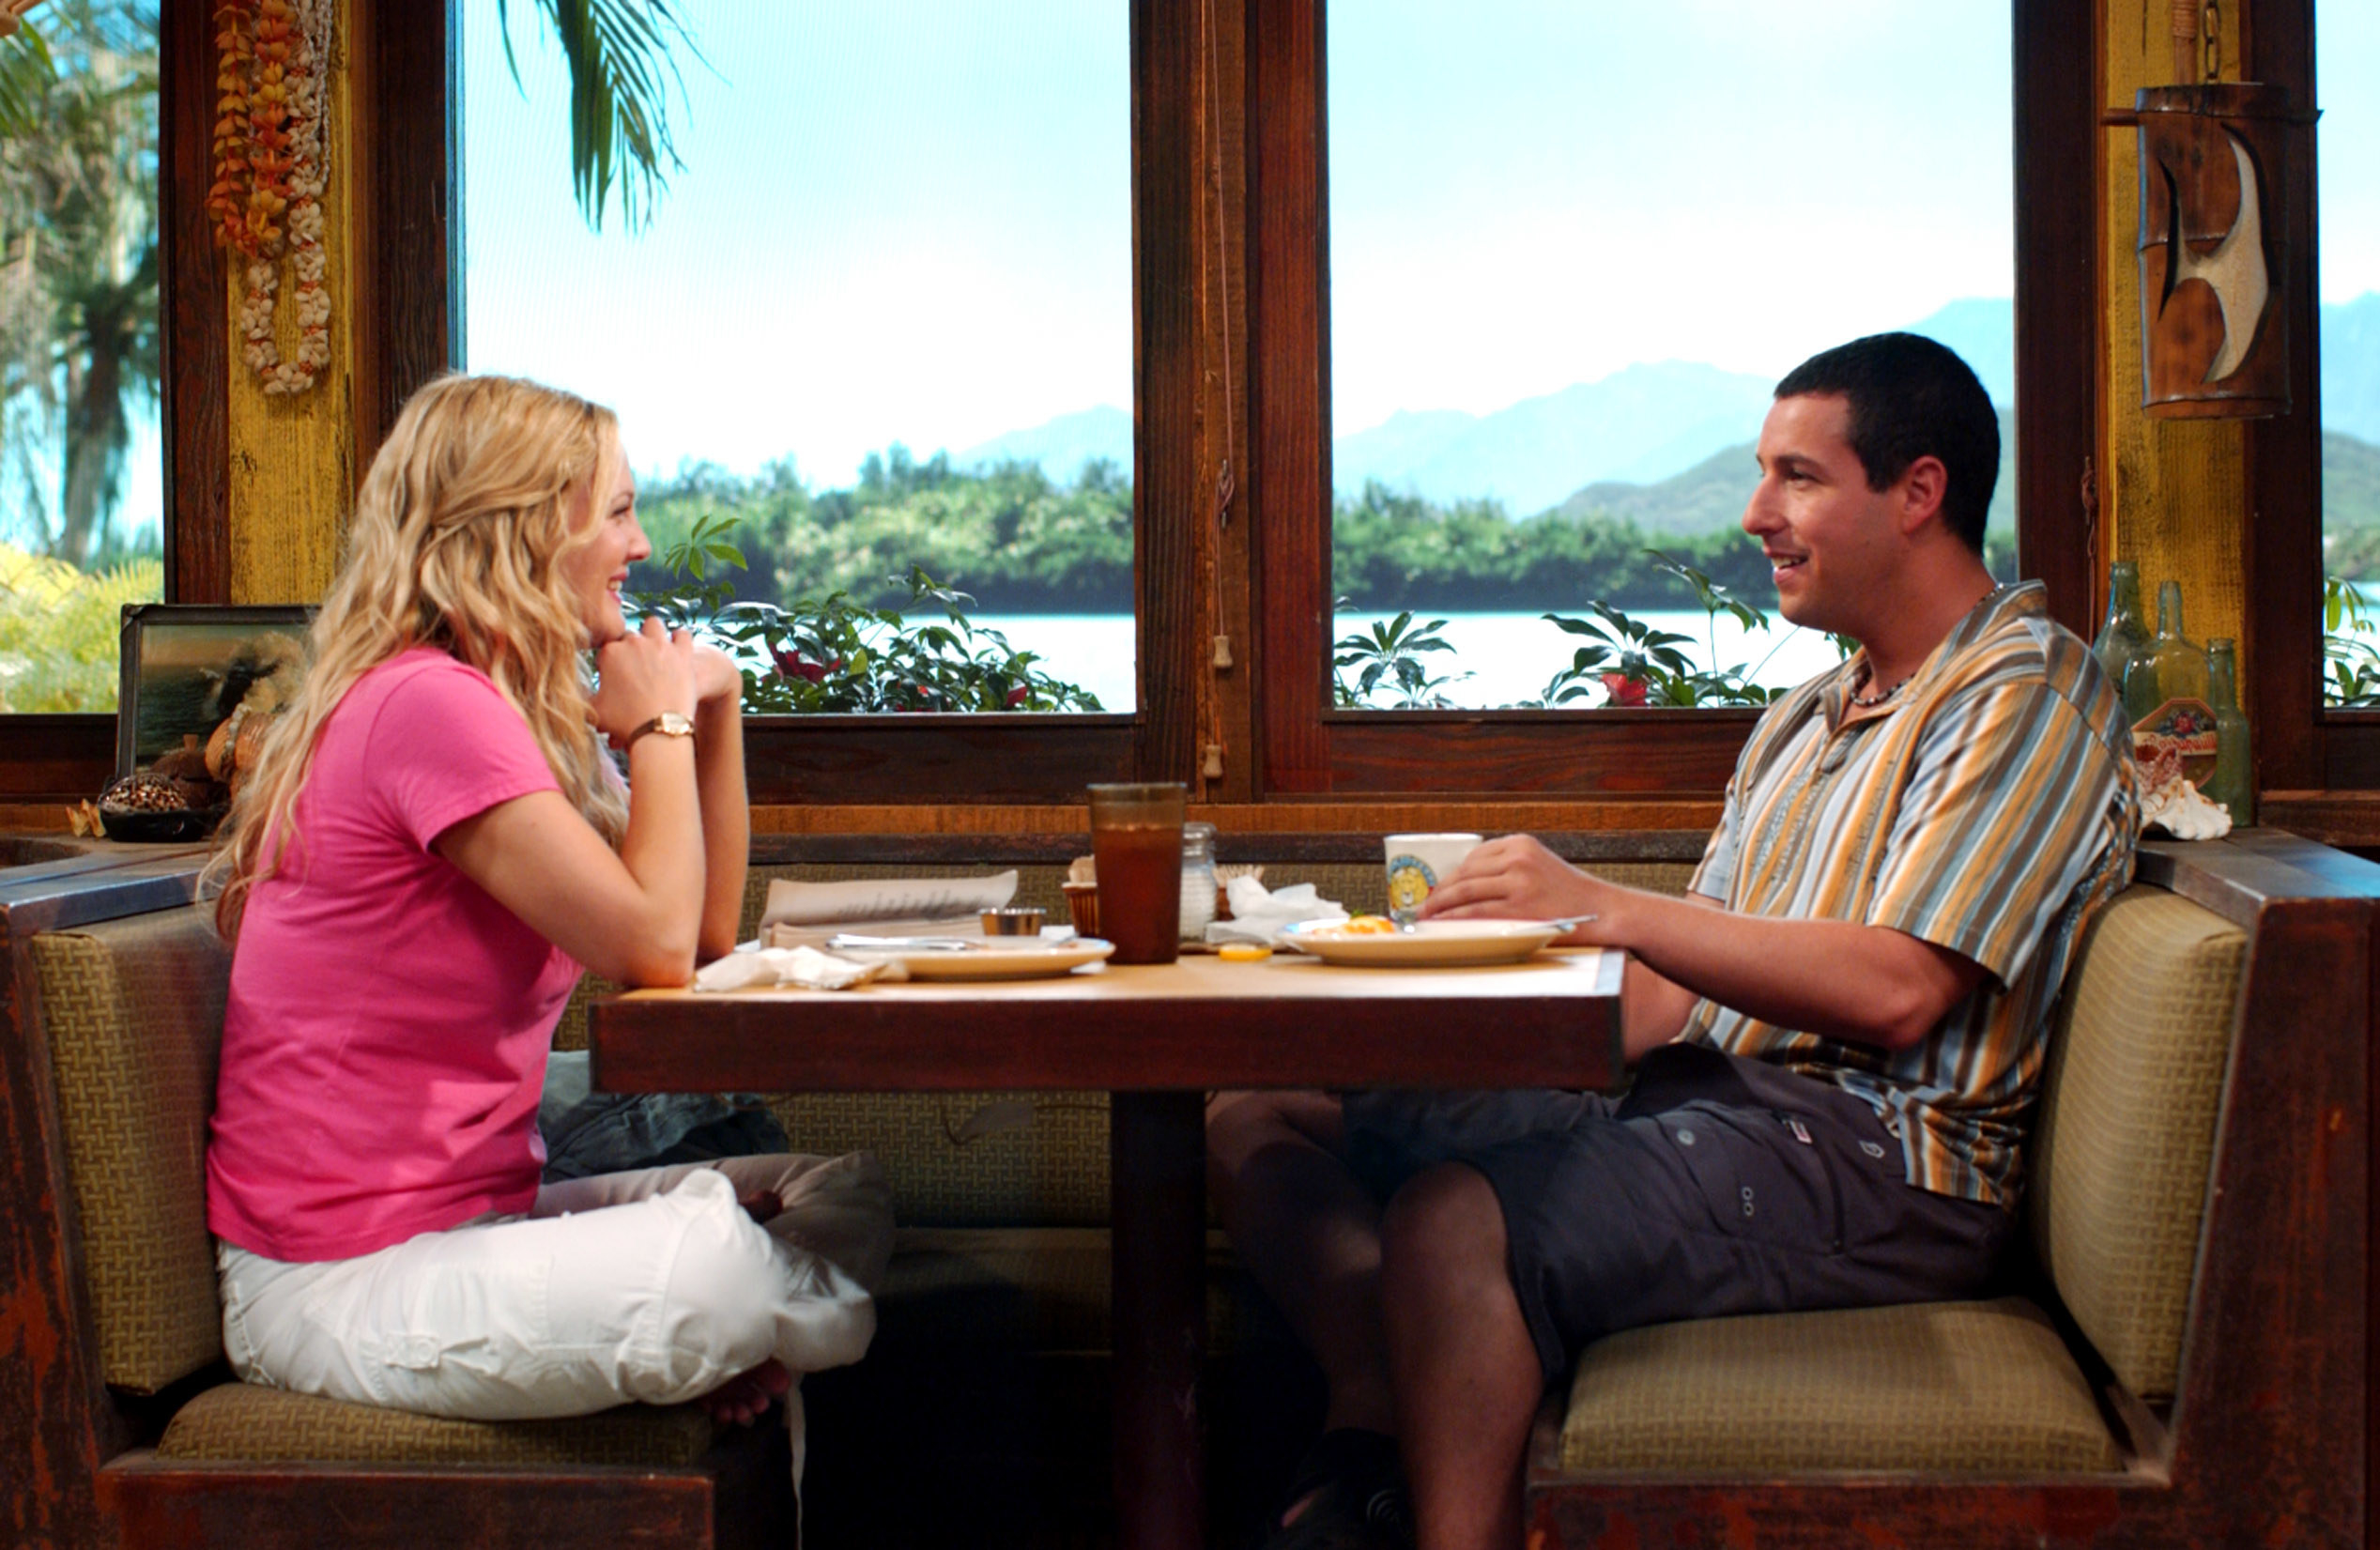 Adam Sandler and Drew Barrymore talking to each other appearing to look happy at a diner